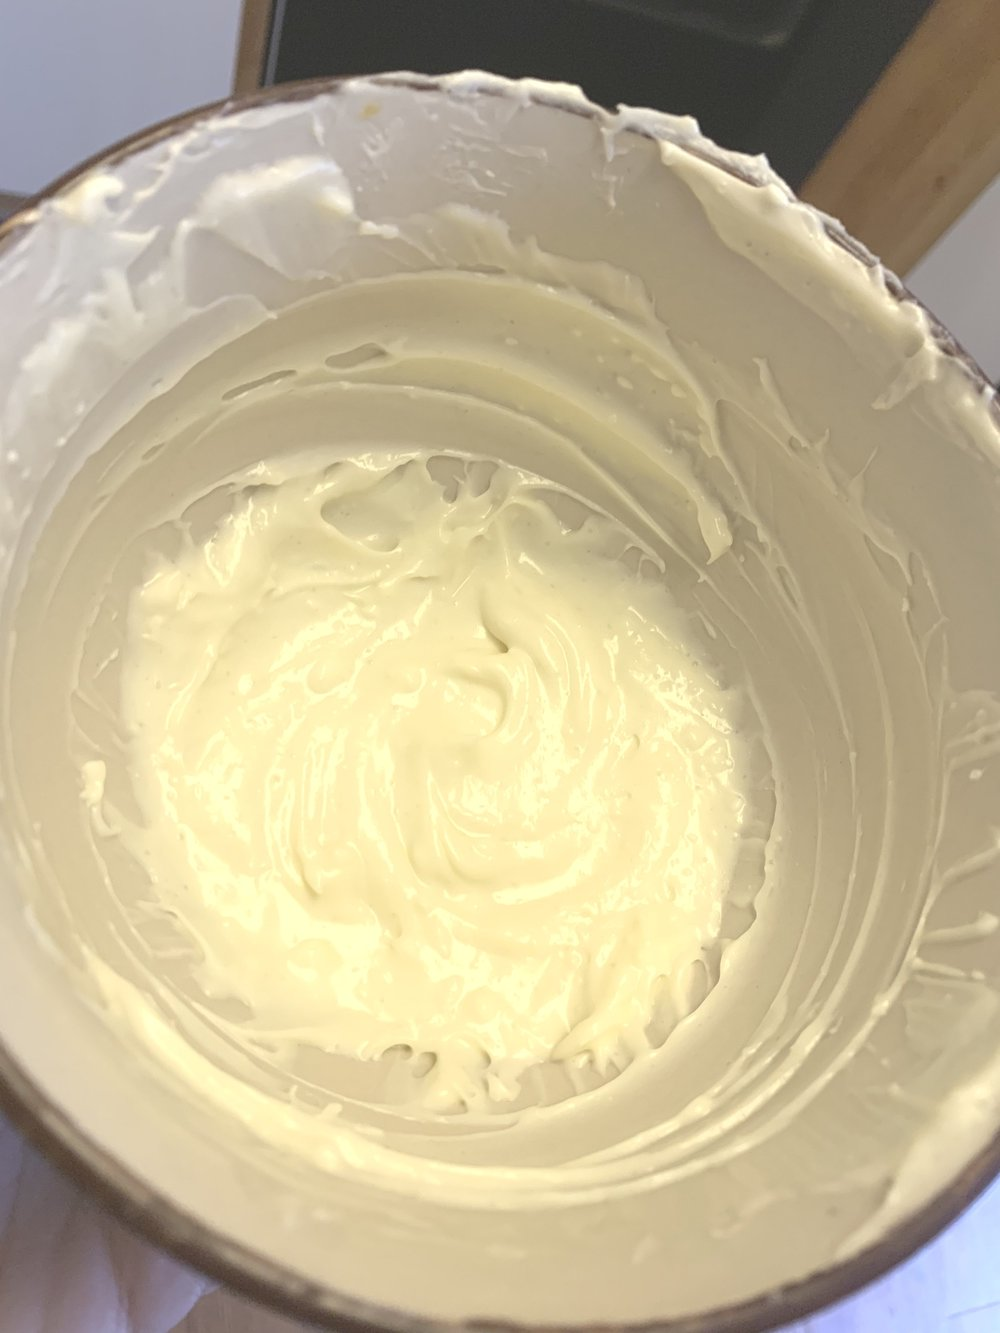 8.While they are baking, combine cream cheese, Truvia, vanilla (optional), and heavy whipping cream together until smooth. -